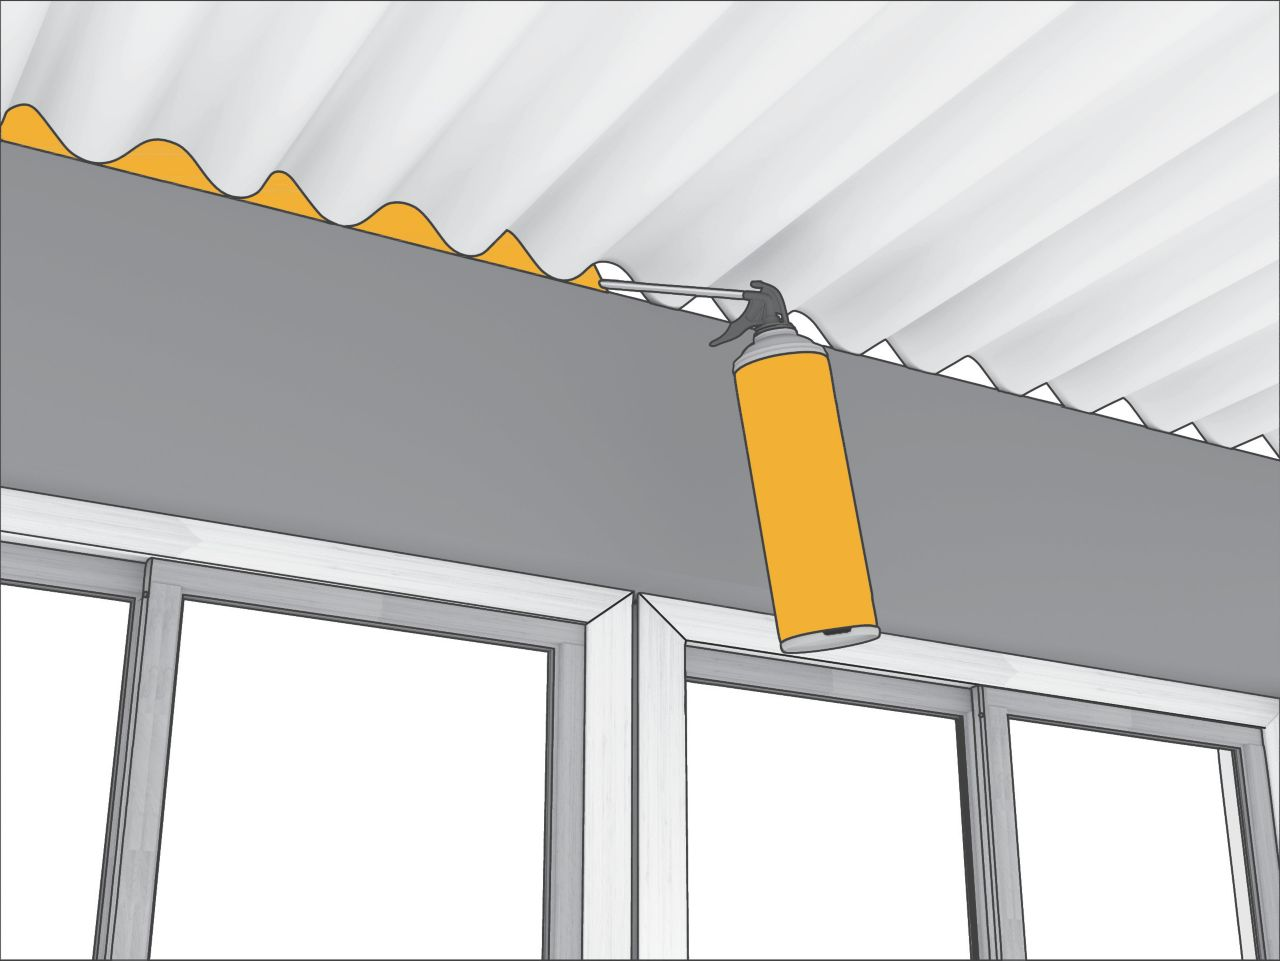 Application of Sika Boom Expansion foam - Illustration